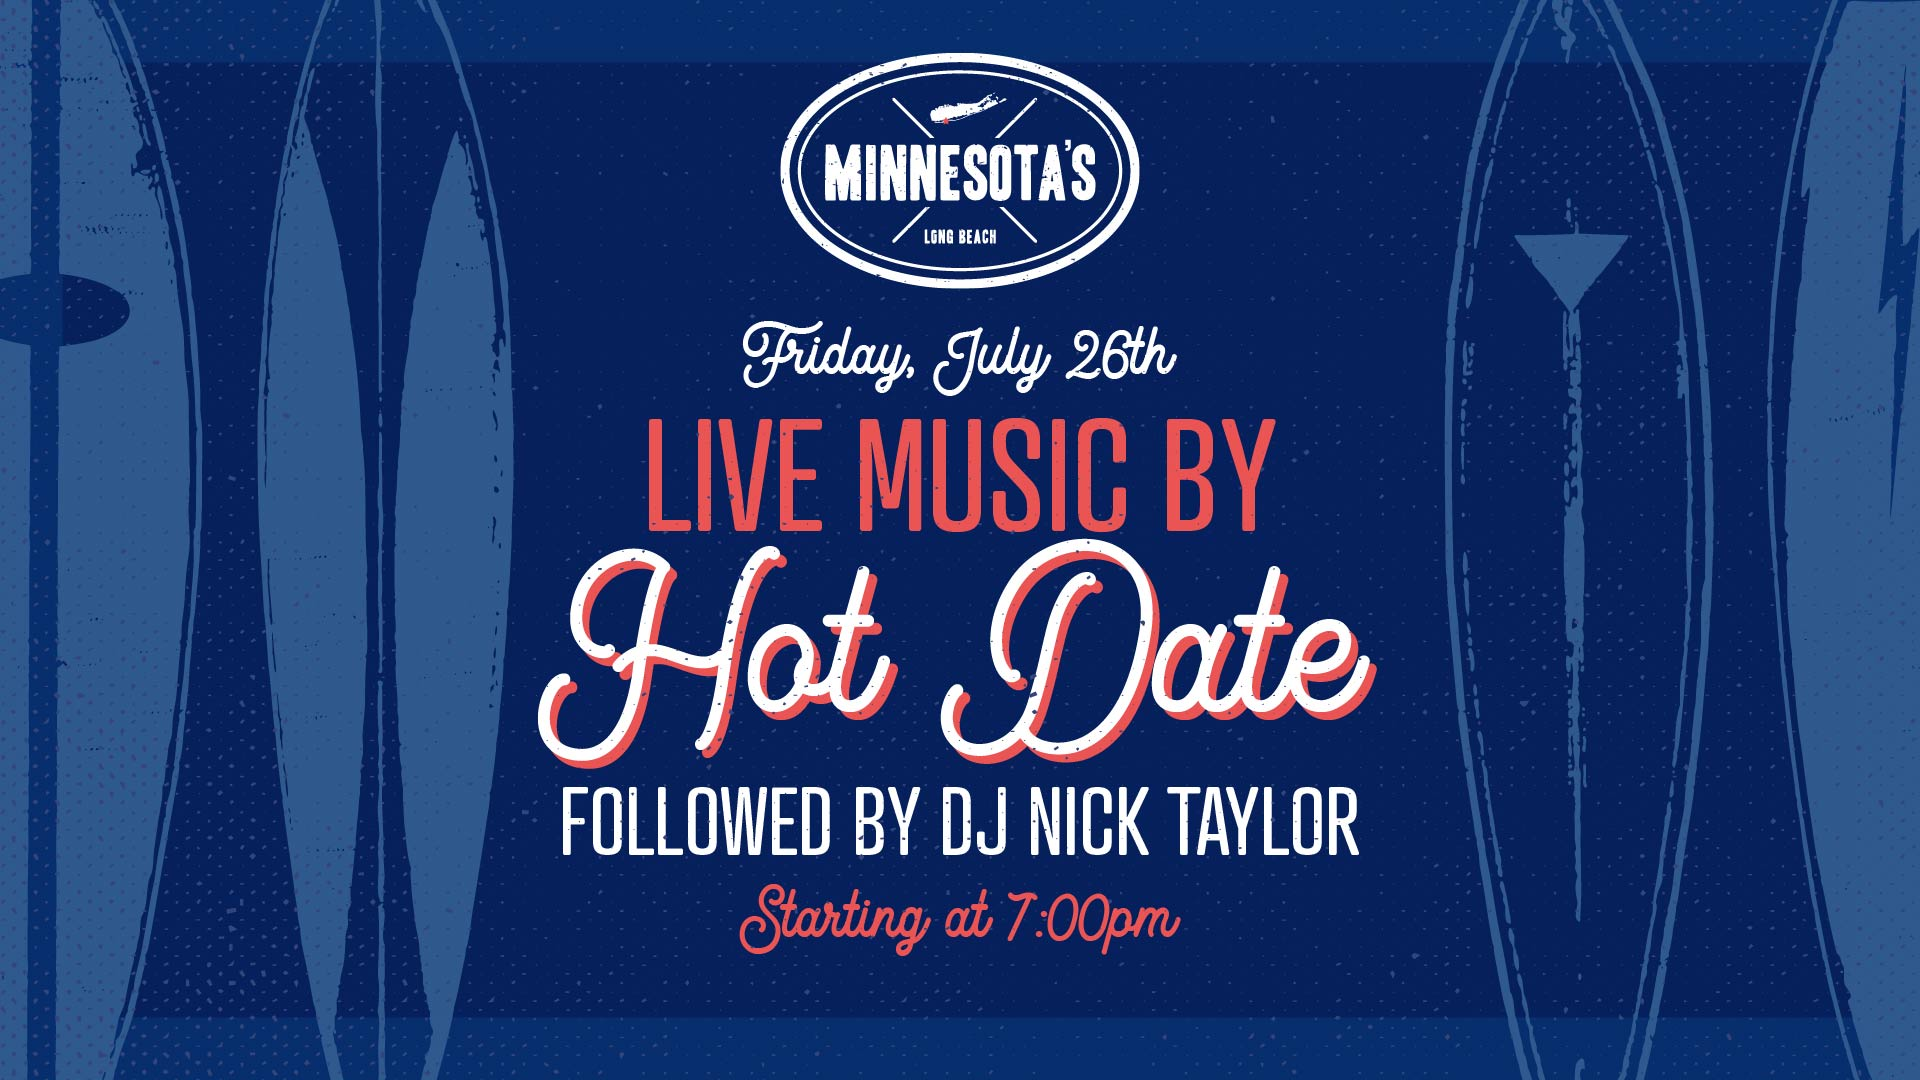 flyer for live music by hot date followed by dj nick taylor at minnesotas on july 26th at 7pm